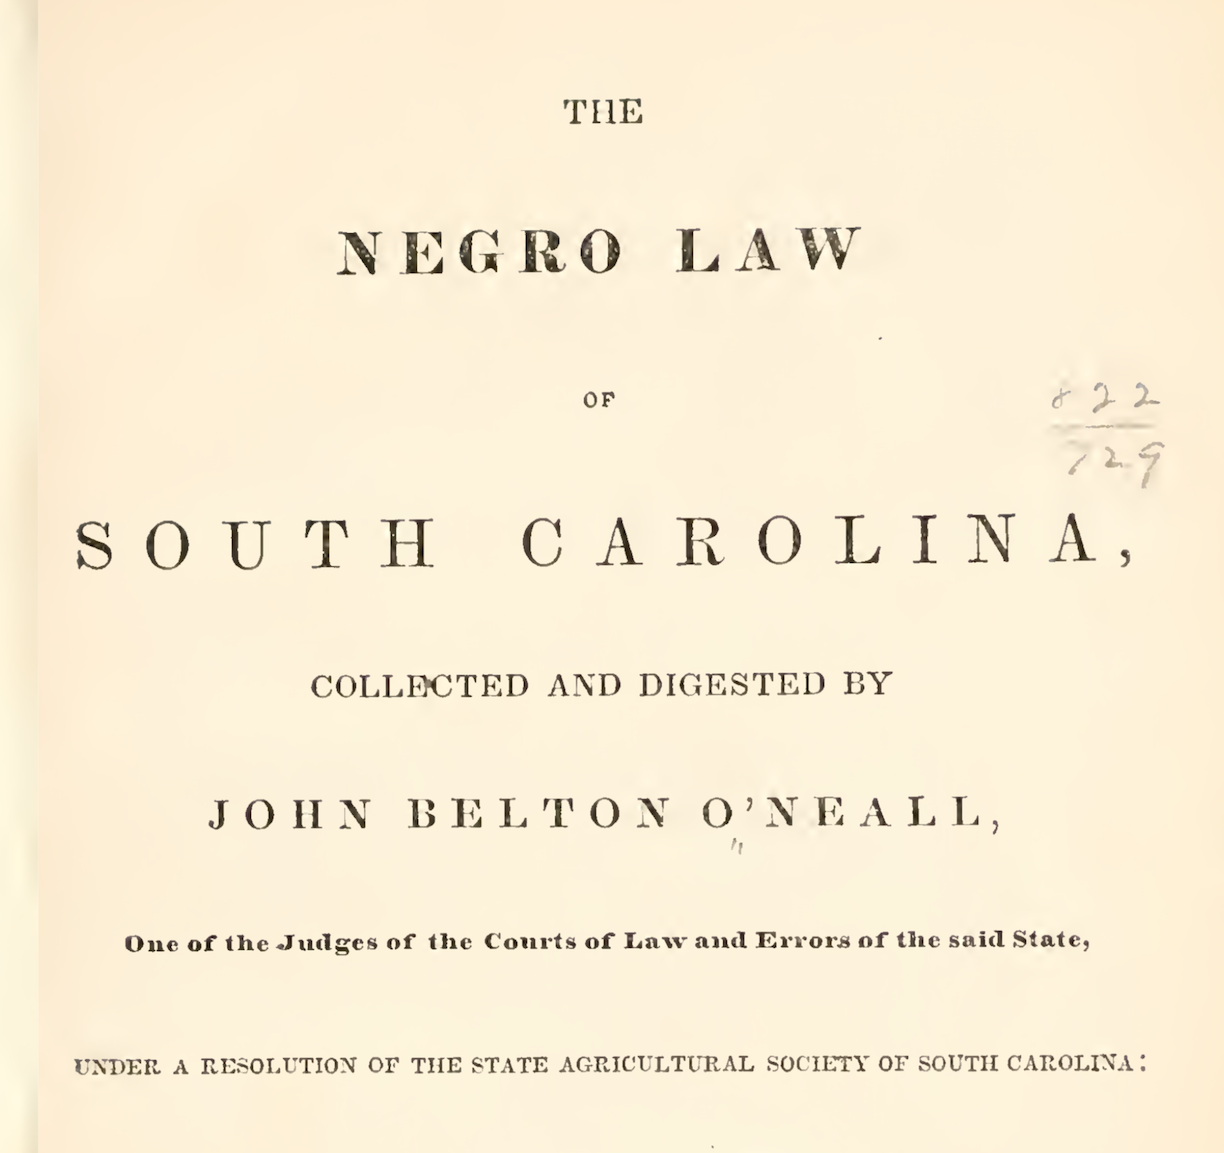 Title page of 1848's legal digest titled The Negro Law of South Carolina.